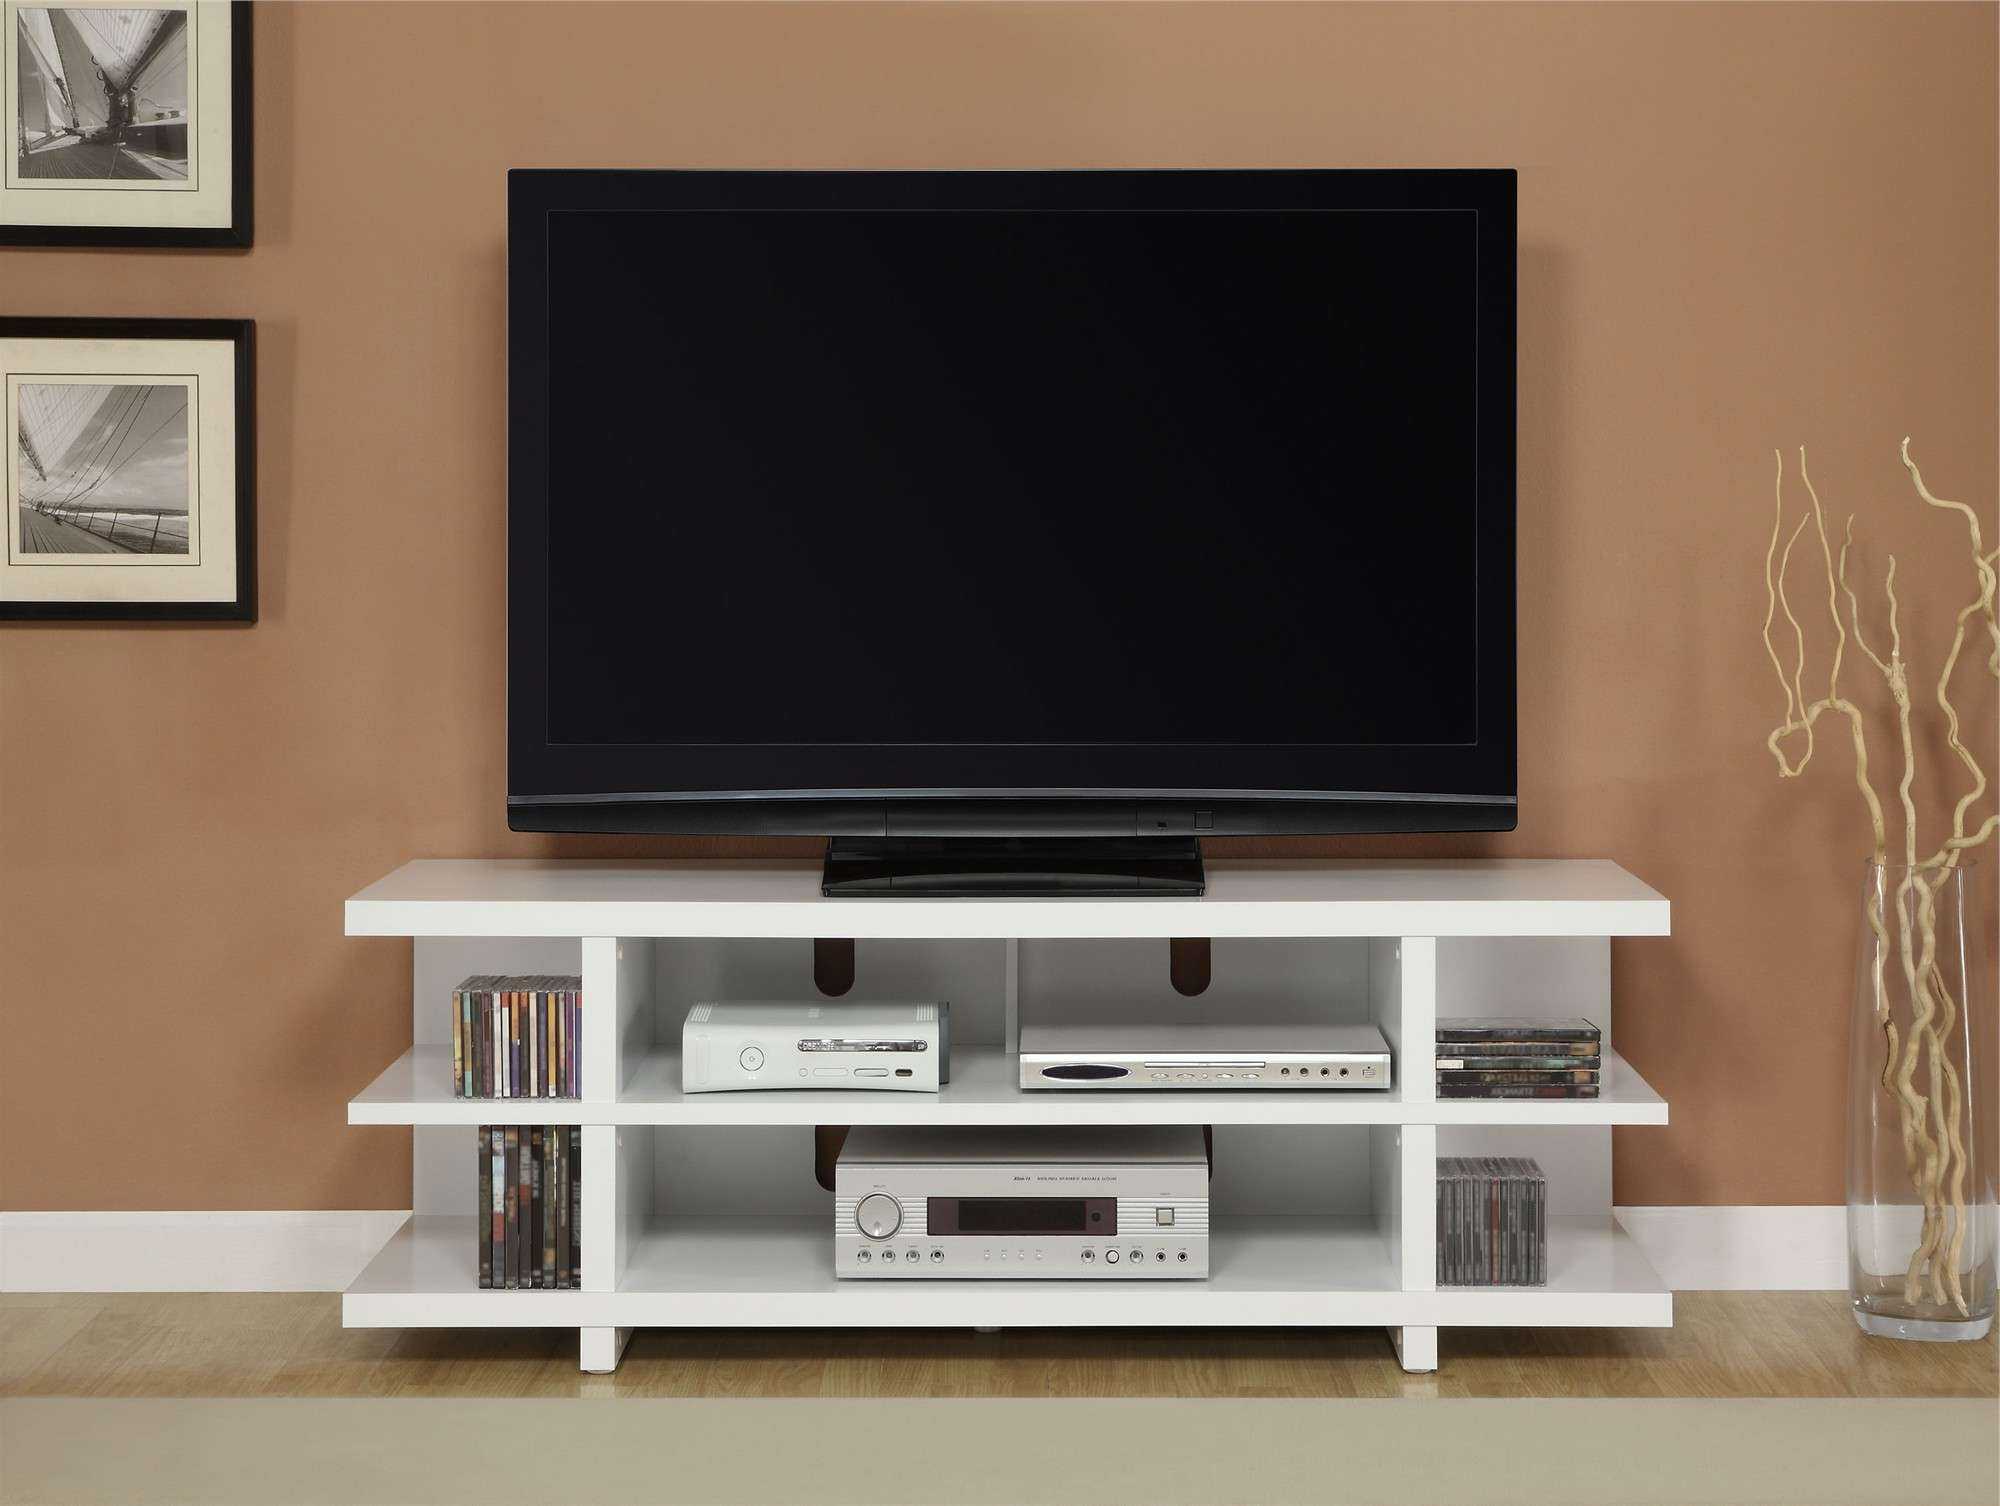 White Stained Wooden Tv Stand Having Several Open Shelves For Throughout Modern Tv Stands For Flat Screens (View 3 of 15)